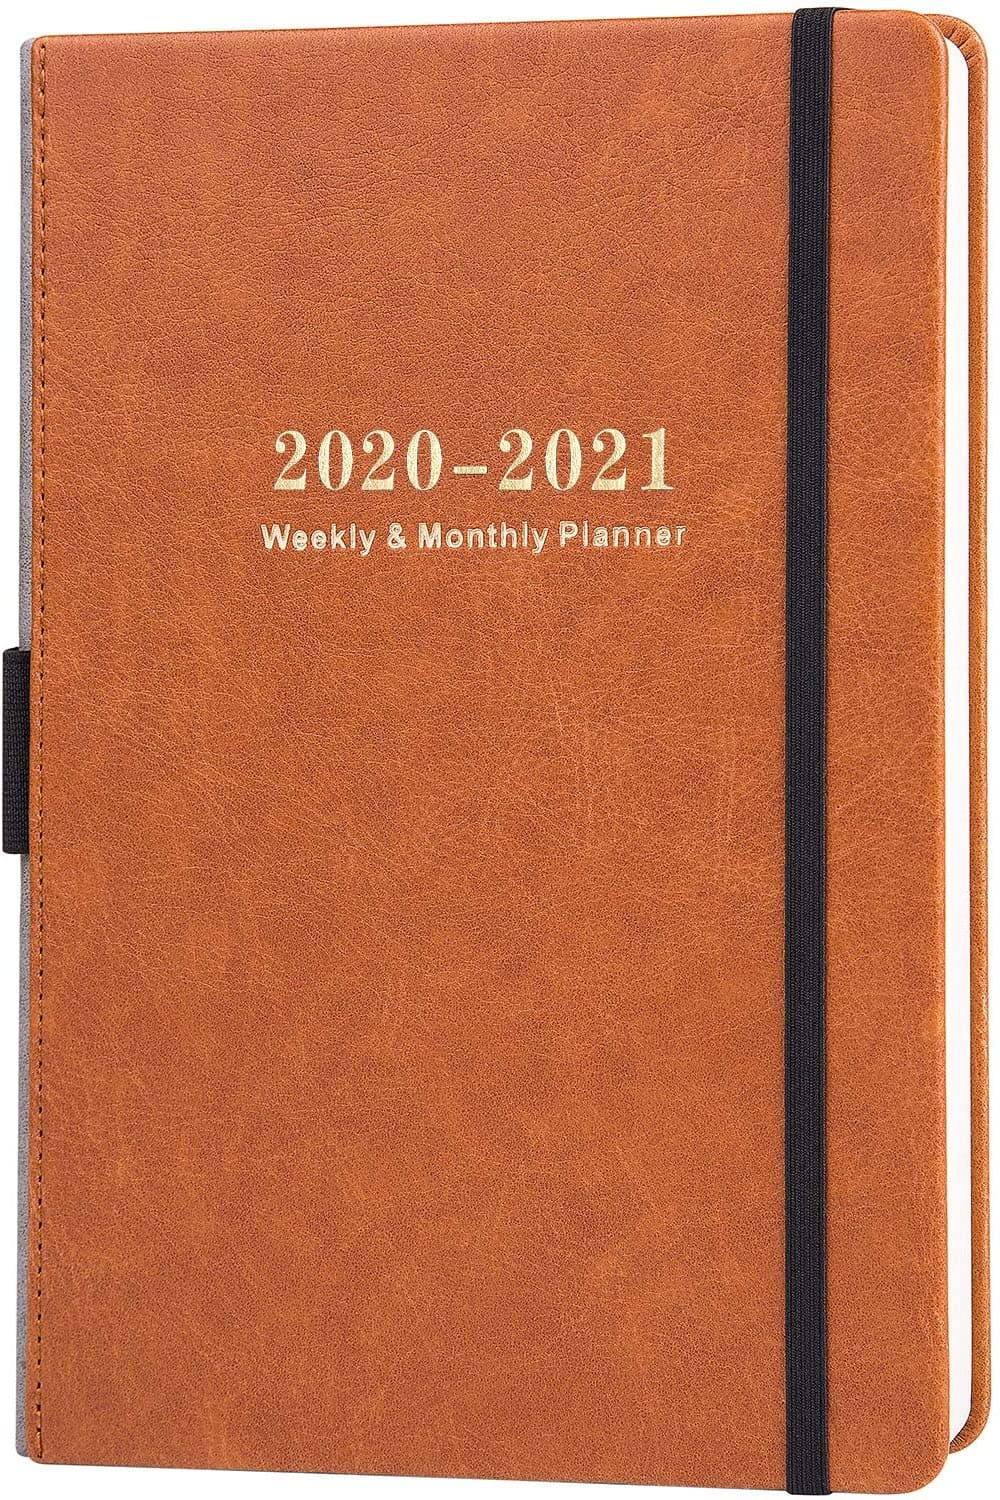 2020 to 2021 weekly academic planner